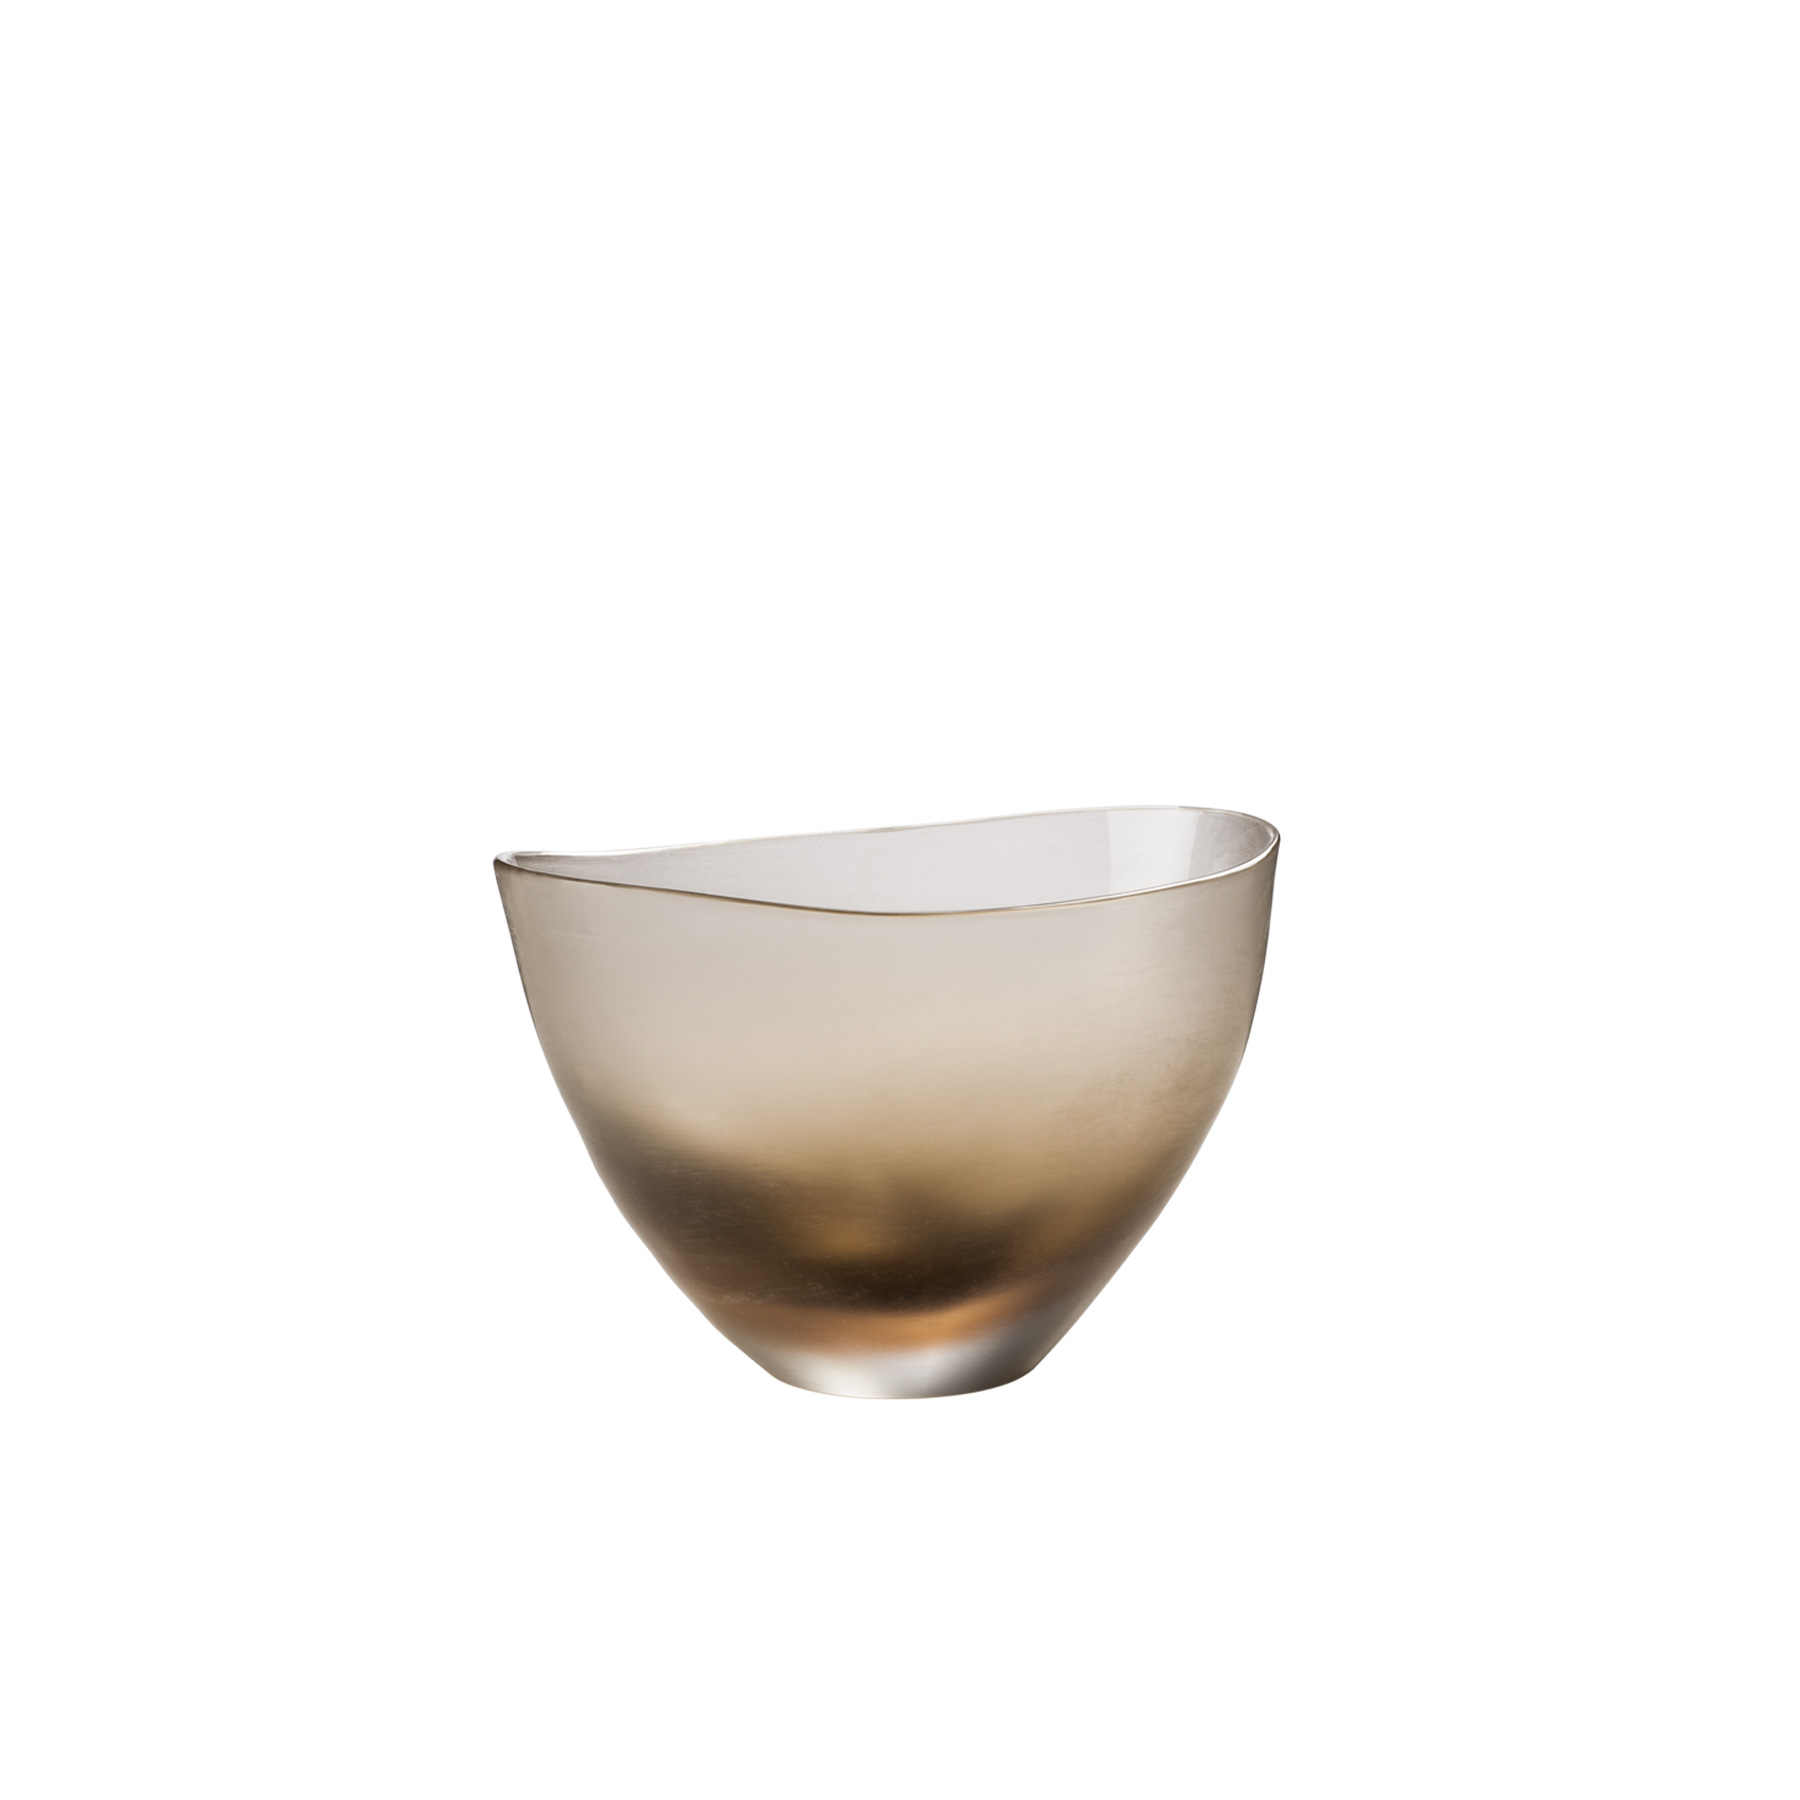 "Incisi Quartz Bowl - Part of the ""Incisi"" collection, they are named after a complex and sophisticated technique. This glass is cold-engraved with gentle colours, refined and subdued. They invite you to lightly caress them. A multitude of shapes and colours. Apparently, Paolo Venini had a knack for experimenting with Incisi. This exquisite mouth-blown glass vase boasts a striking quartz colour and a wide shape with an asymmetrical rim.